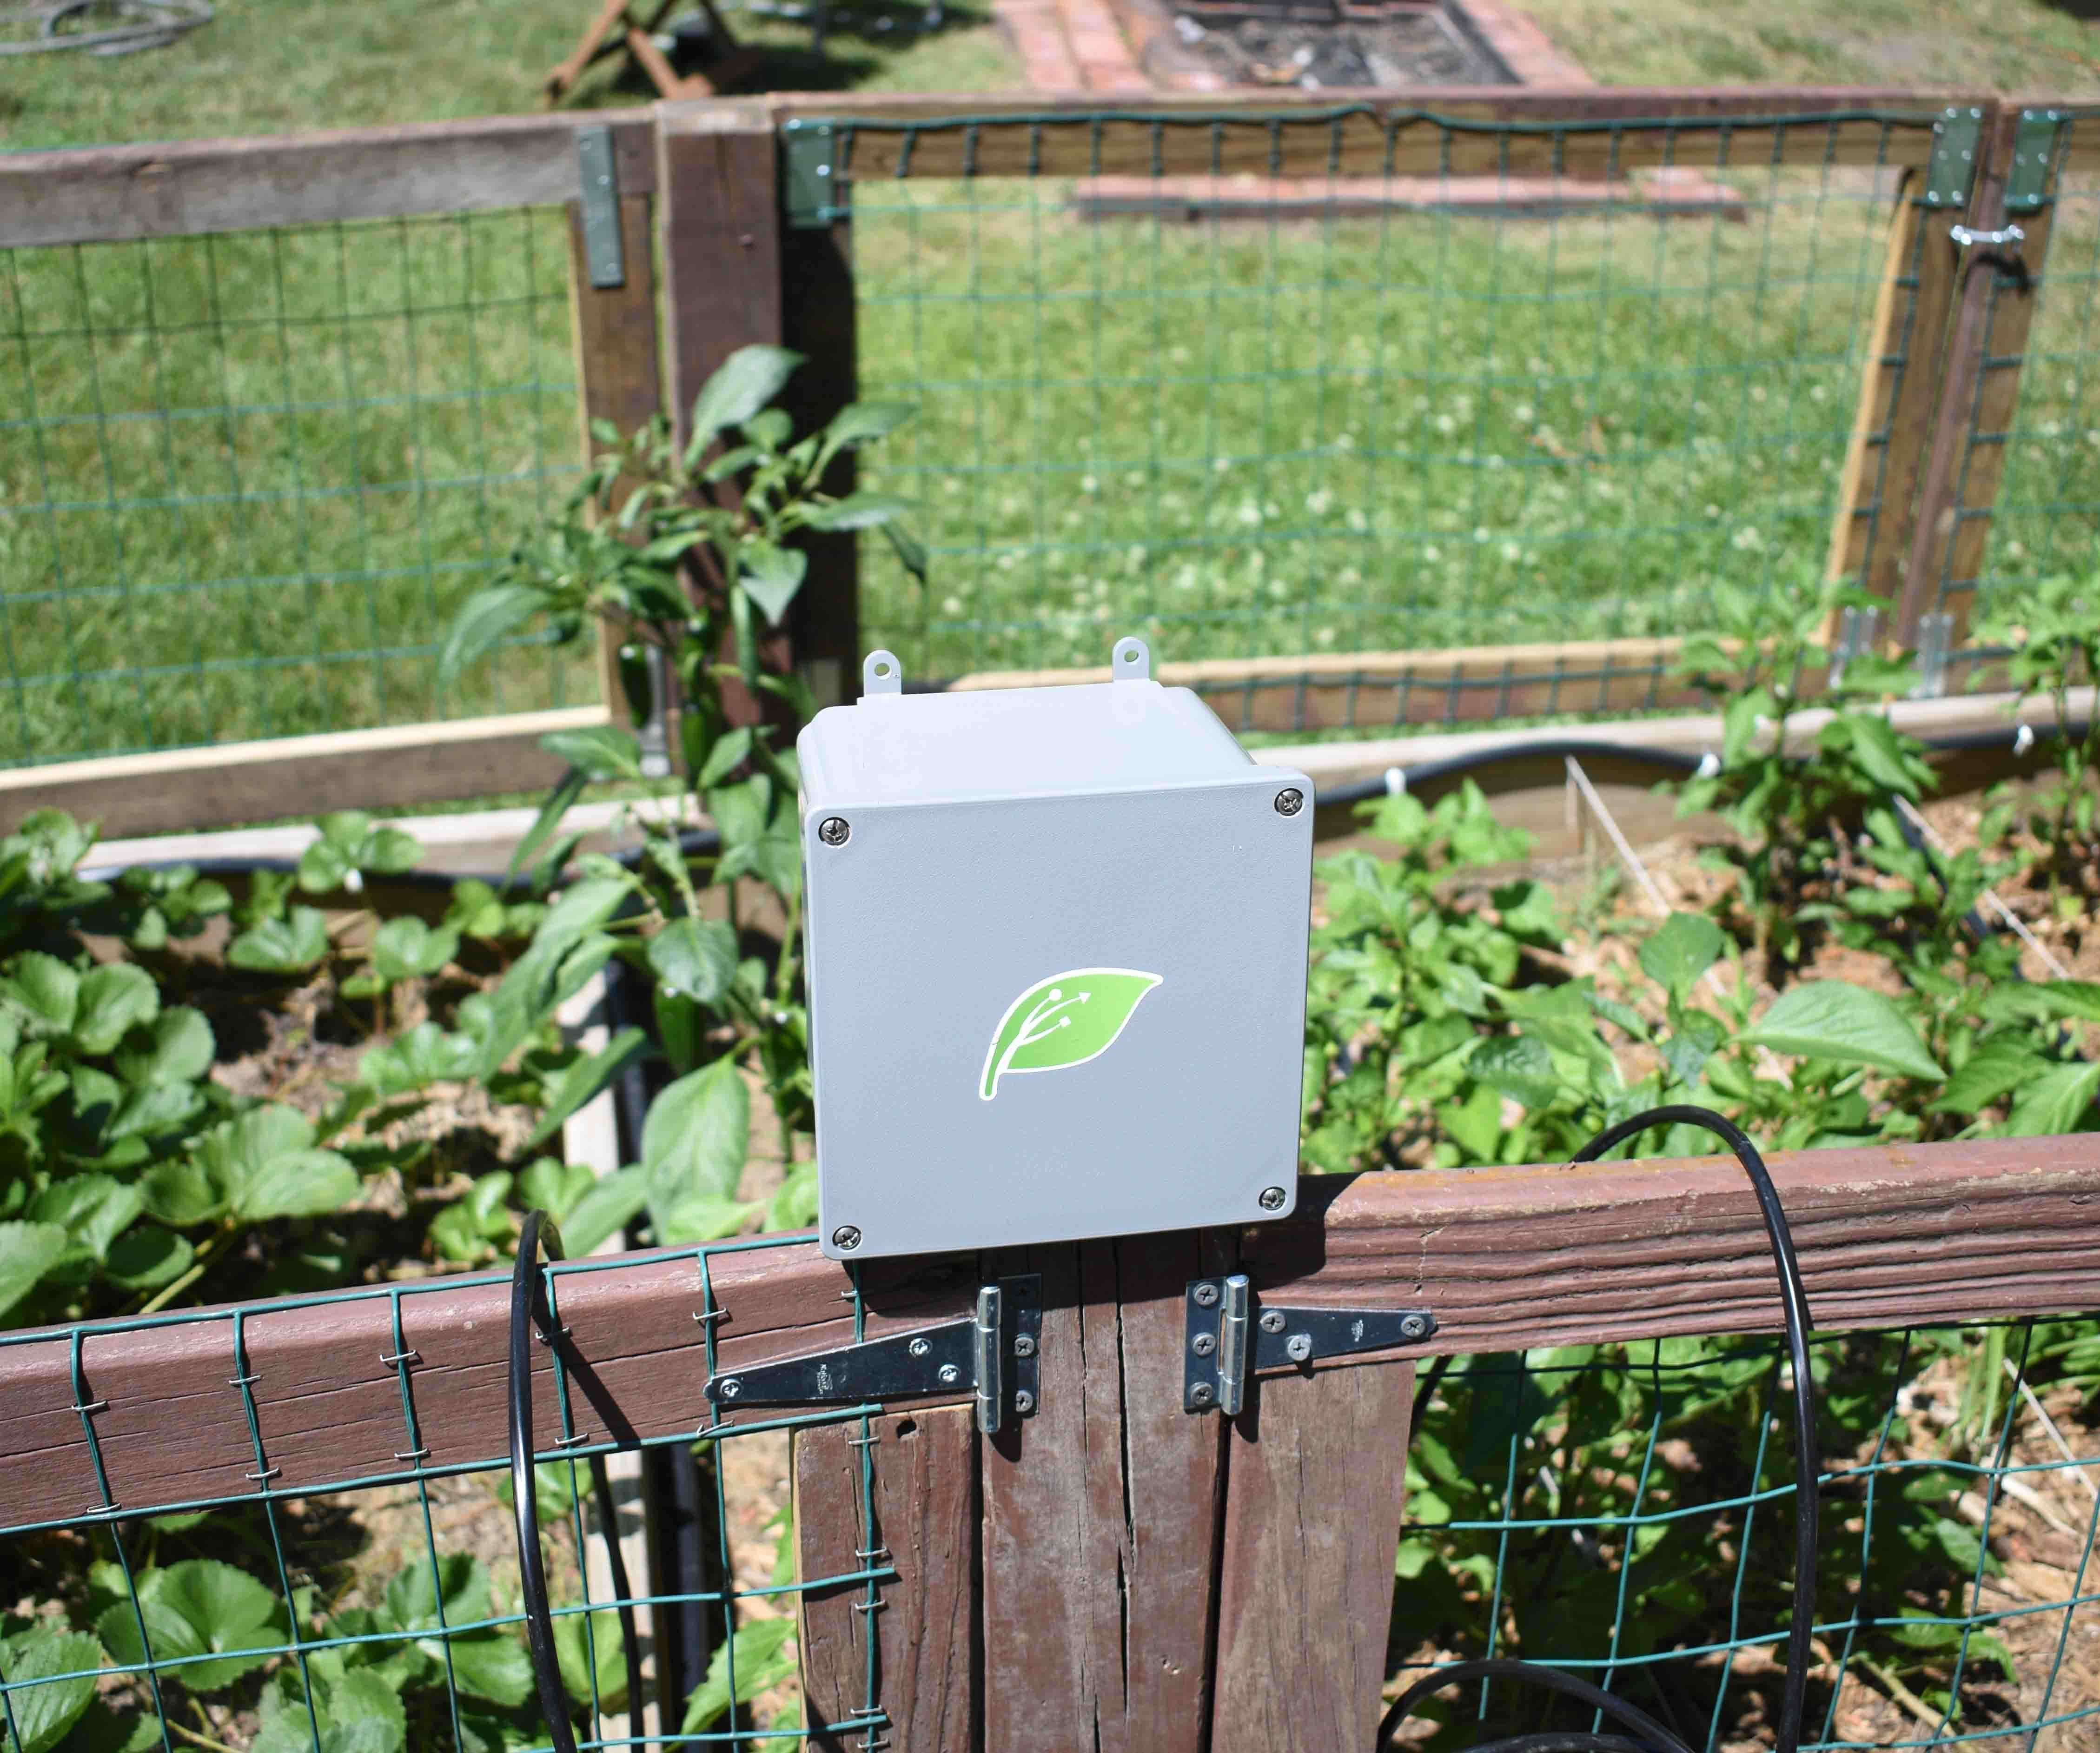 Automated Garden System Built on RaspberryPi for Outdoors or Indoors - MudPi